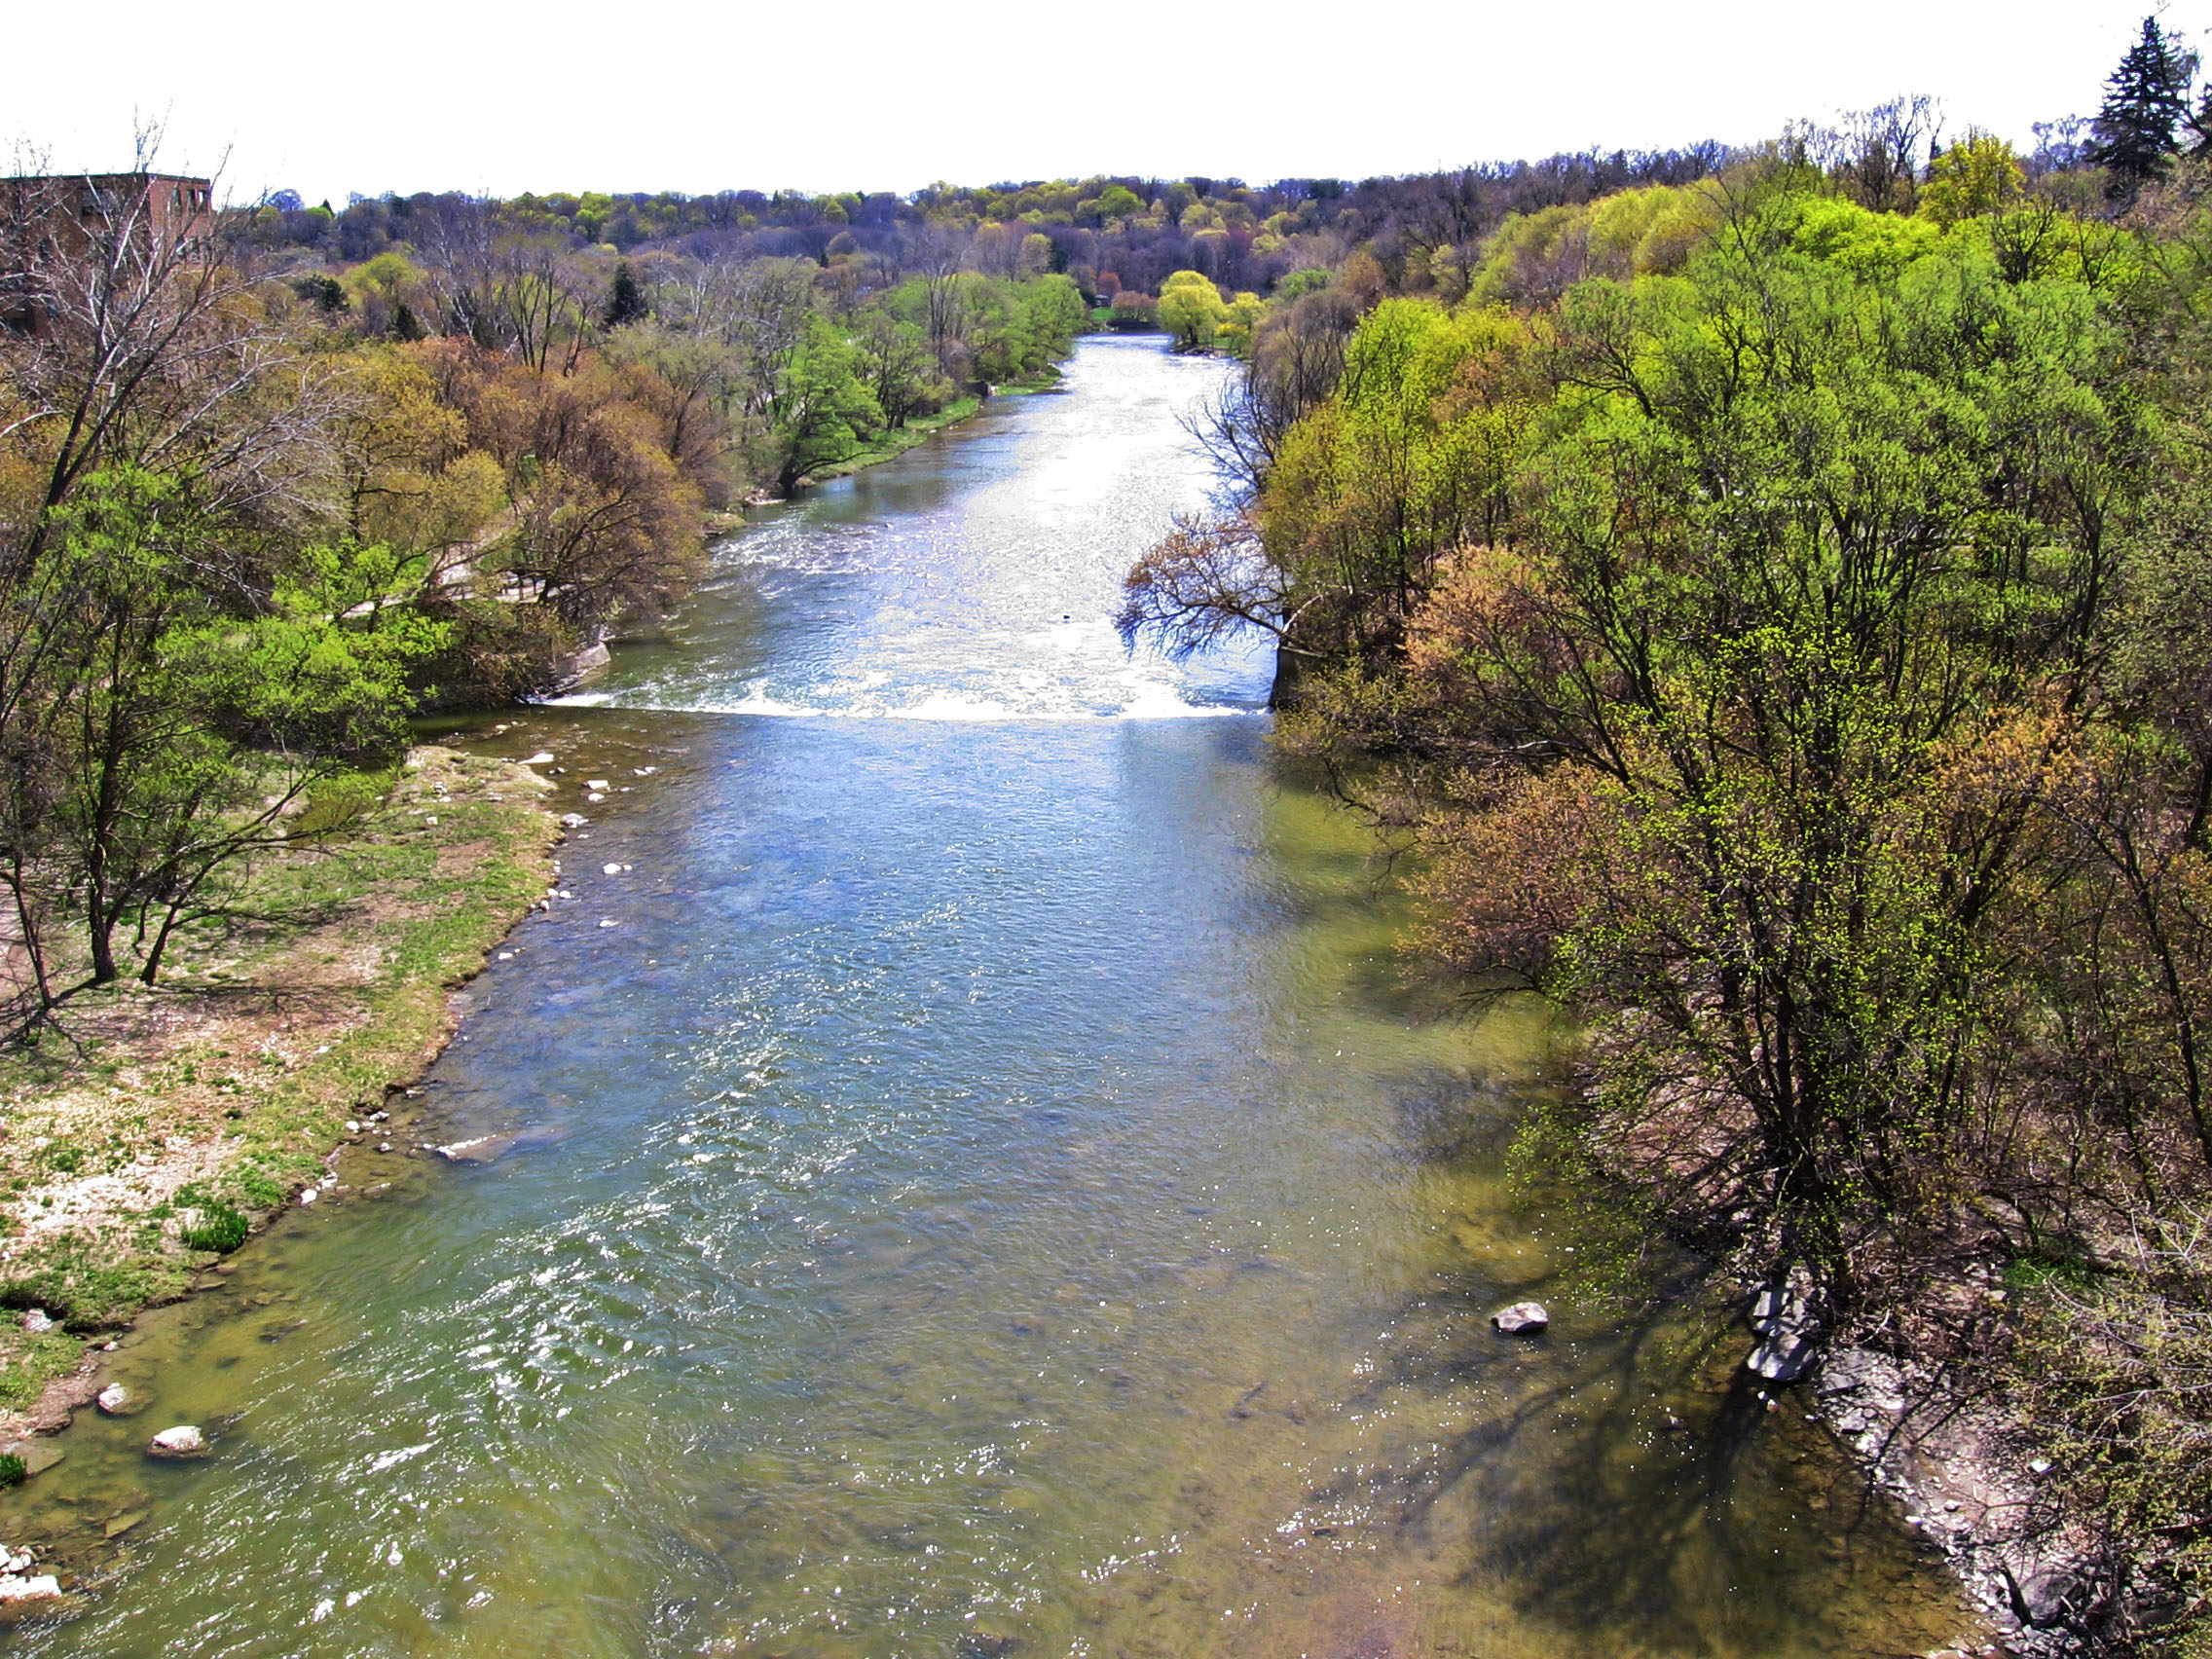 River Histories, Cultures, and Environments: Walking the Humber River, with Dr. Ruth Gamble